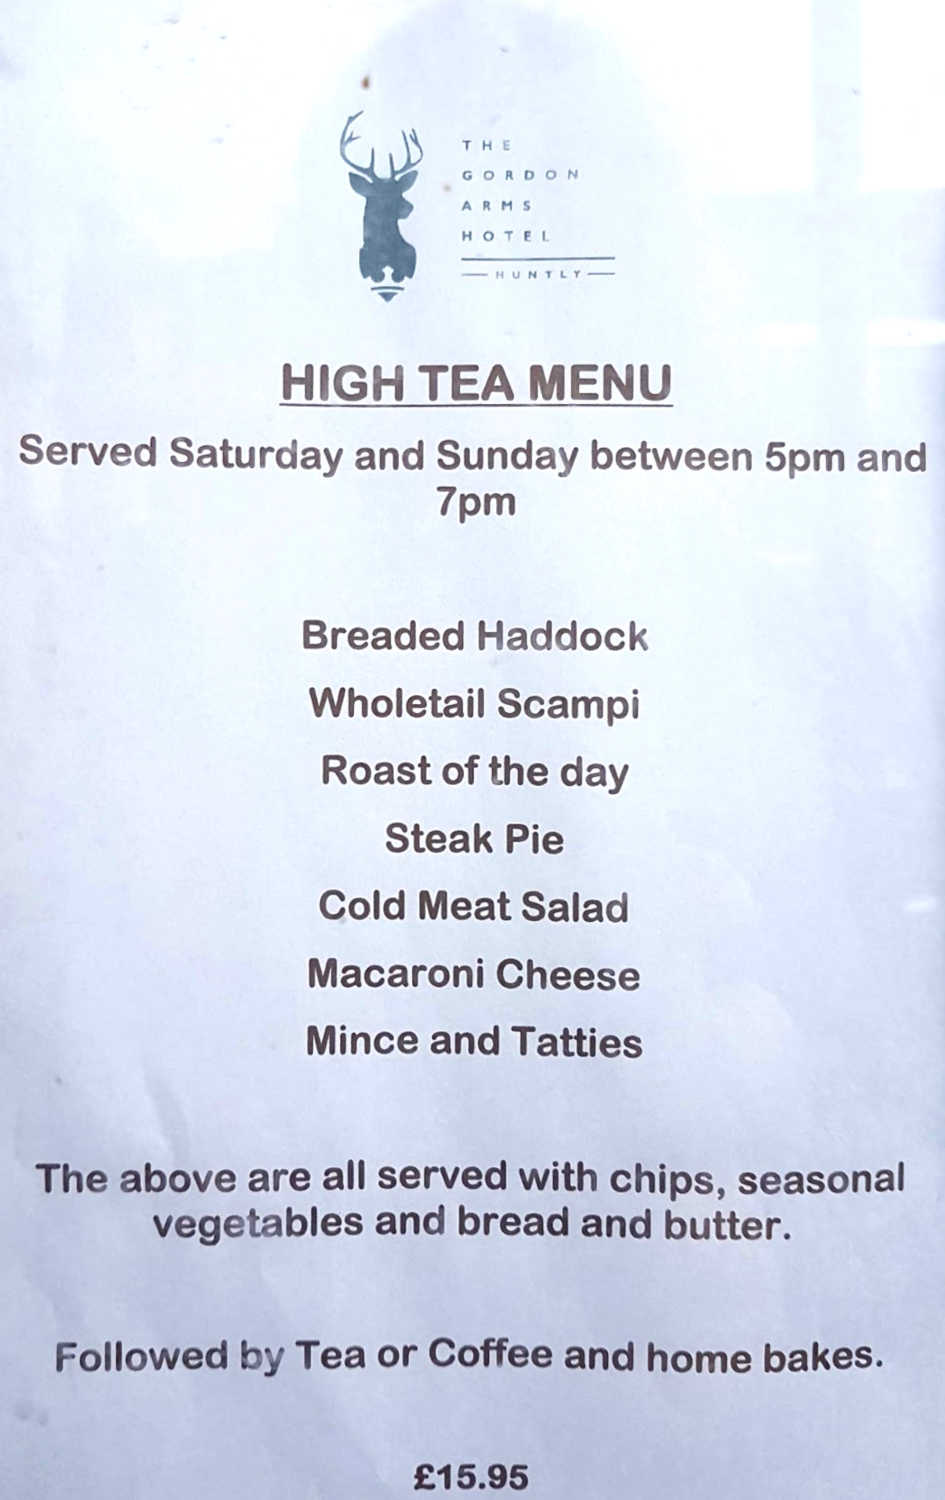 Here's the real high tea deal as advertised outside a hotel in Huntly, Aberdeenshire. You'll not be short of the carbs here, that's for sure.